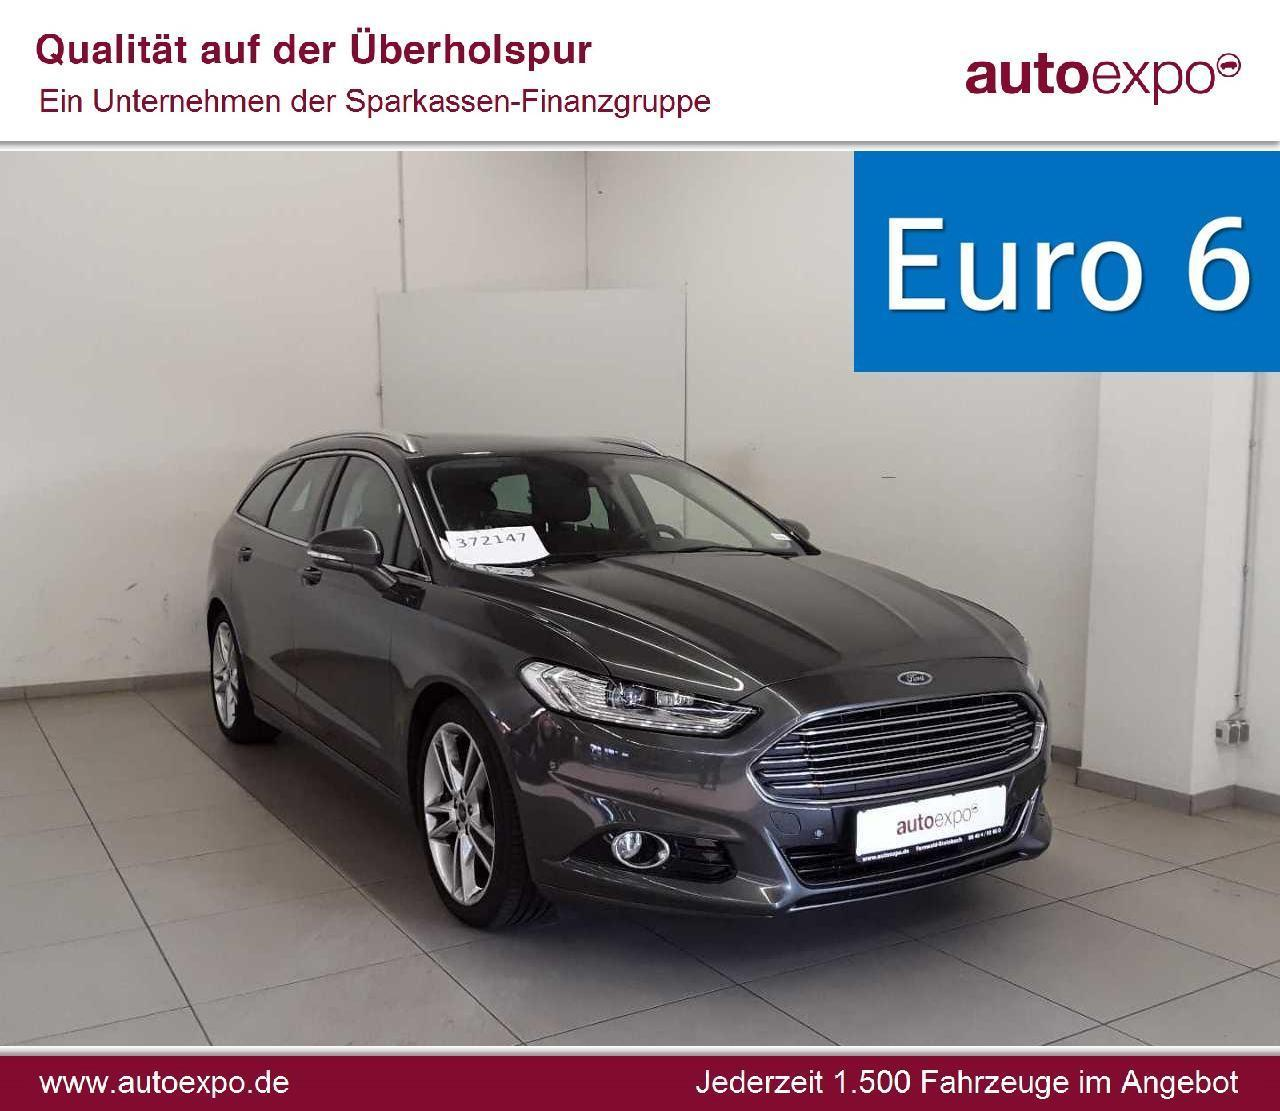 FORD Mondeo Turnier 2.0 Eco Boost